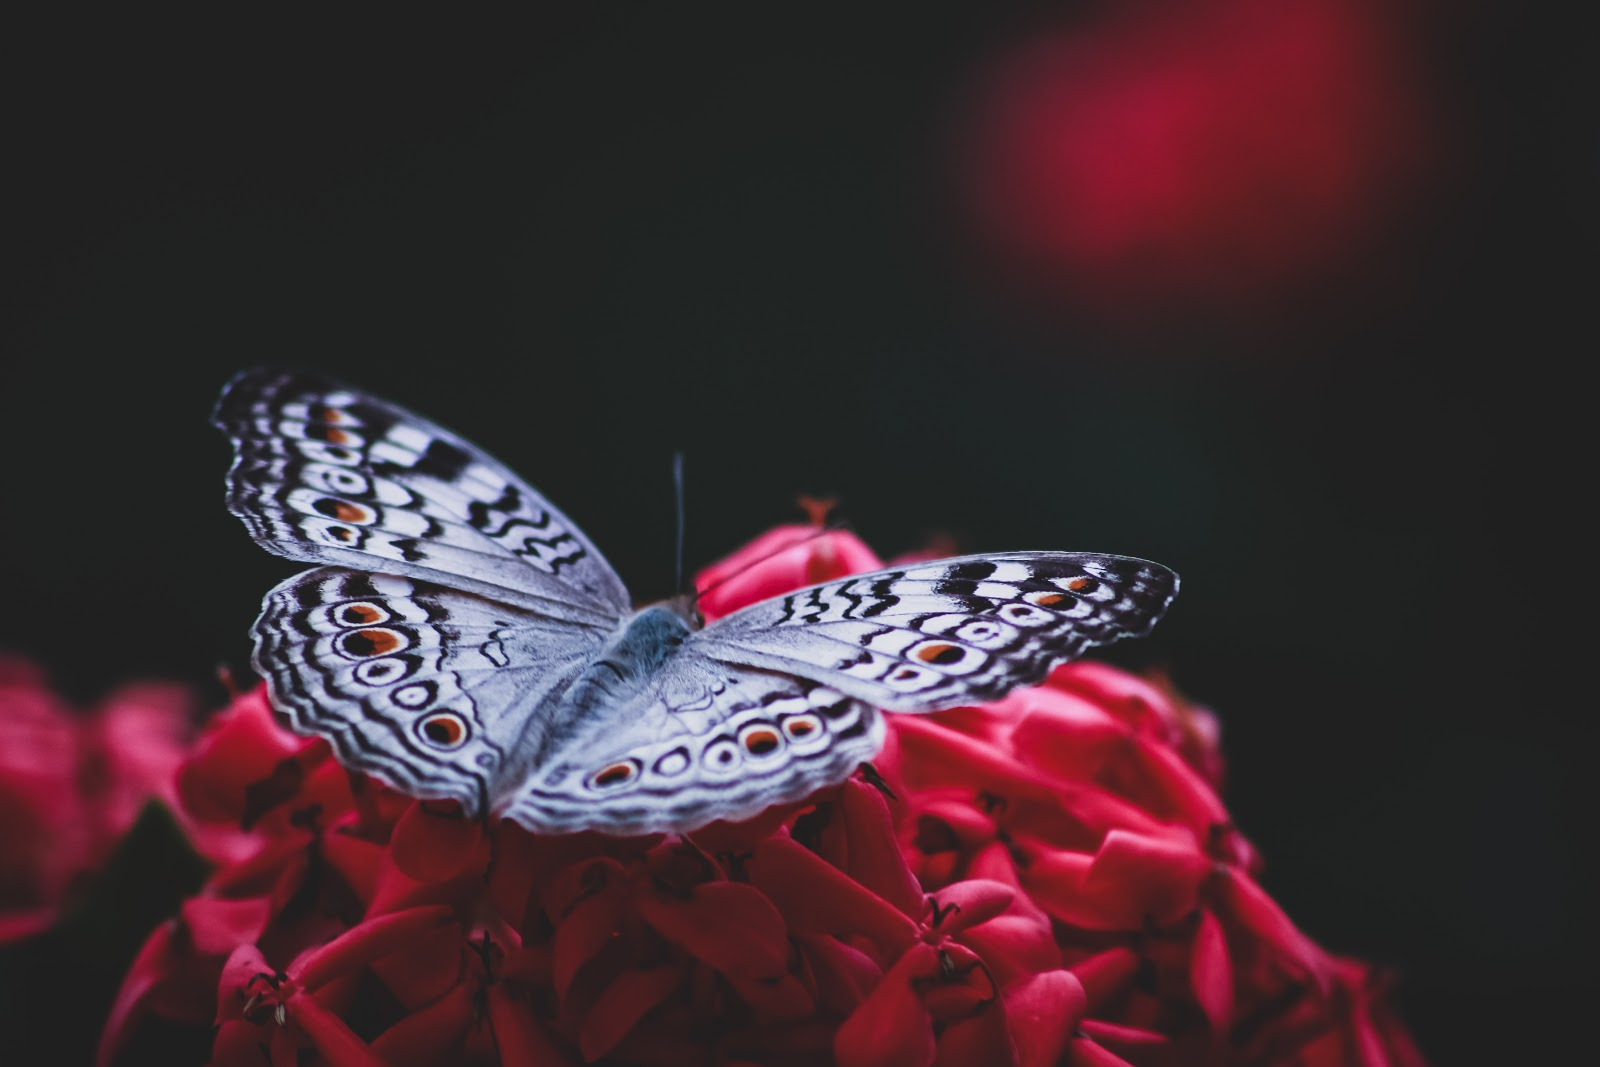 silver-and-black-butterfly-on-red-artificial-flower-pictures